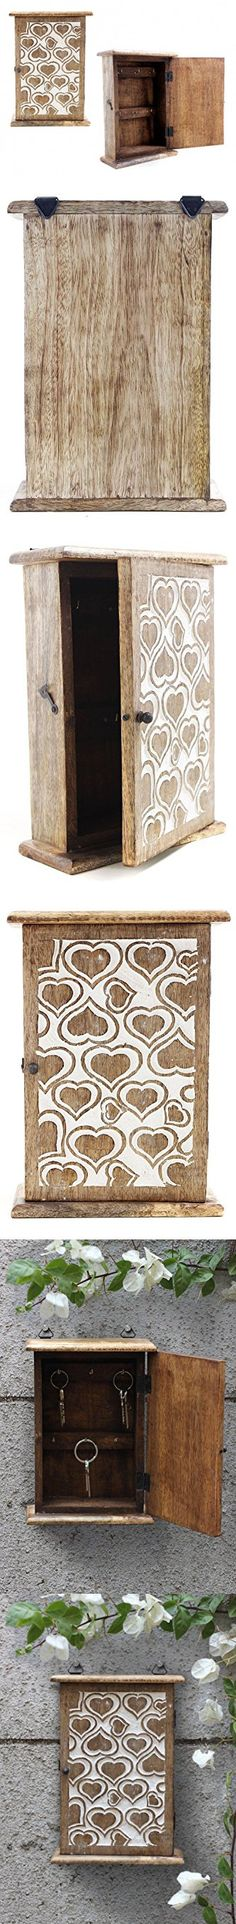 Decorative Key Box For The Wall Impressive Handmade Decorative Wooden Wall Mounted Key Cabinet With Glass Decorating Design